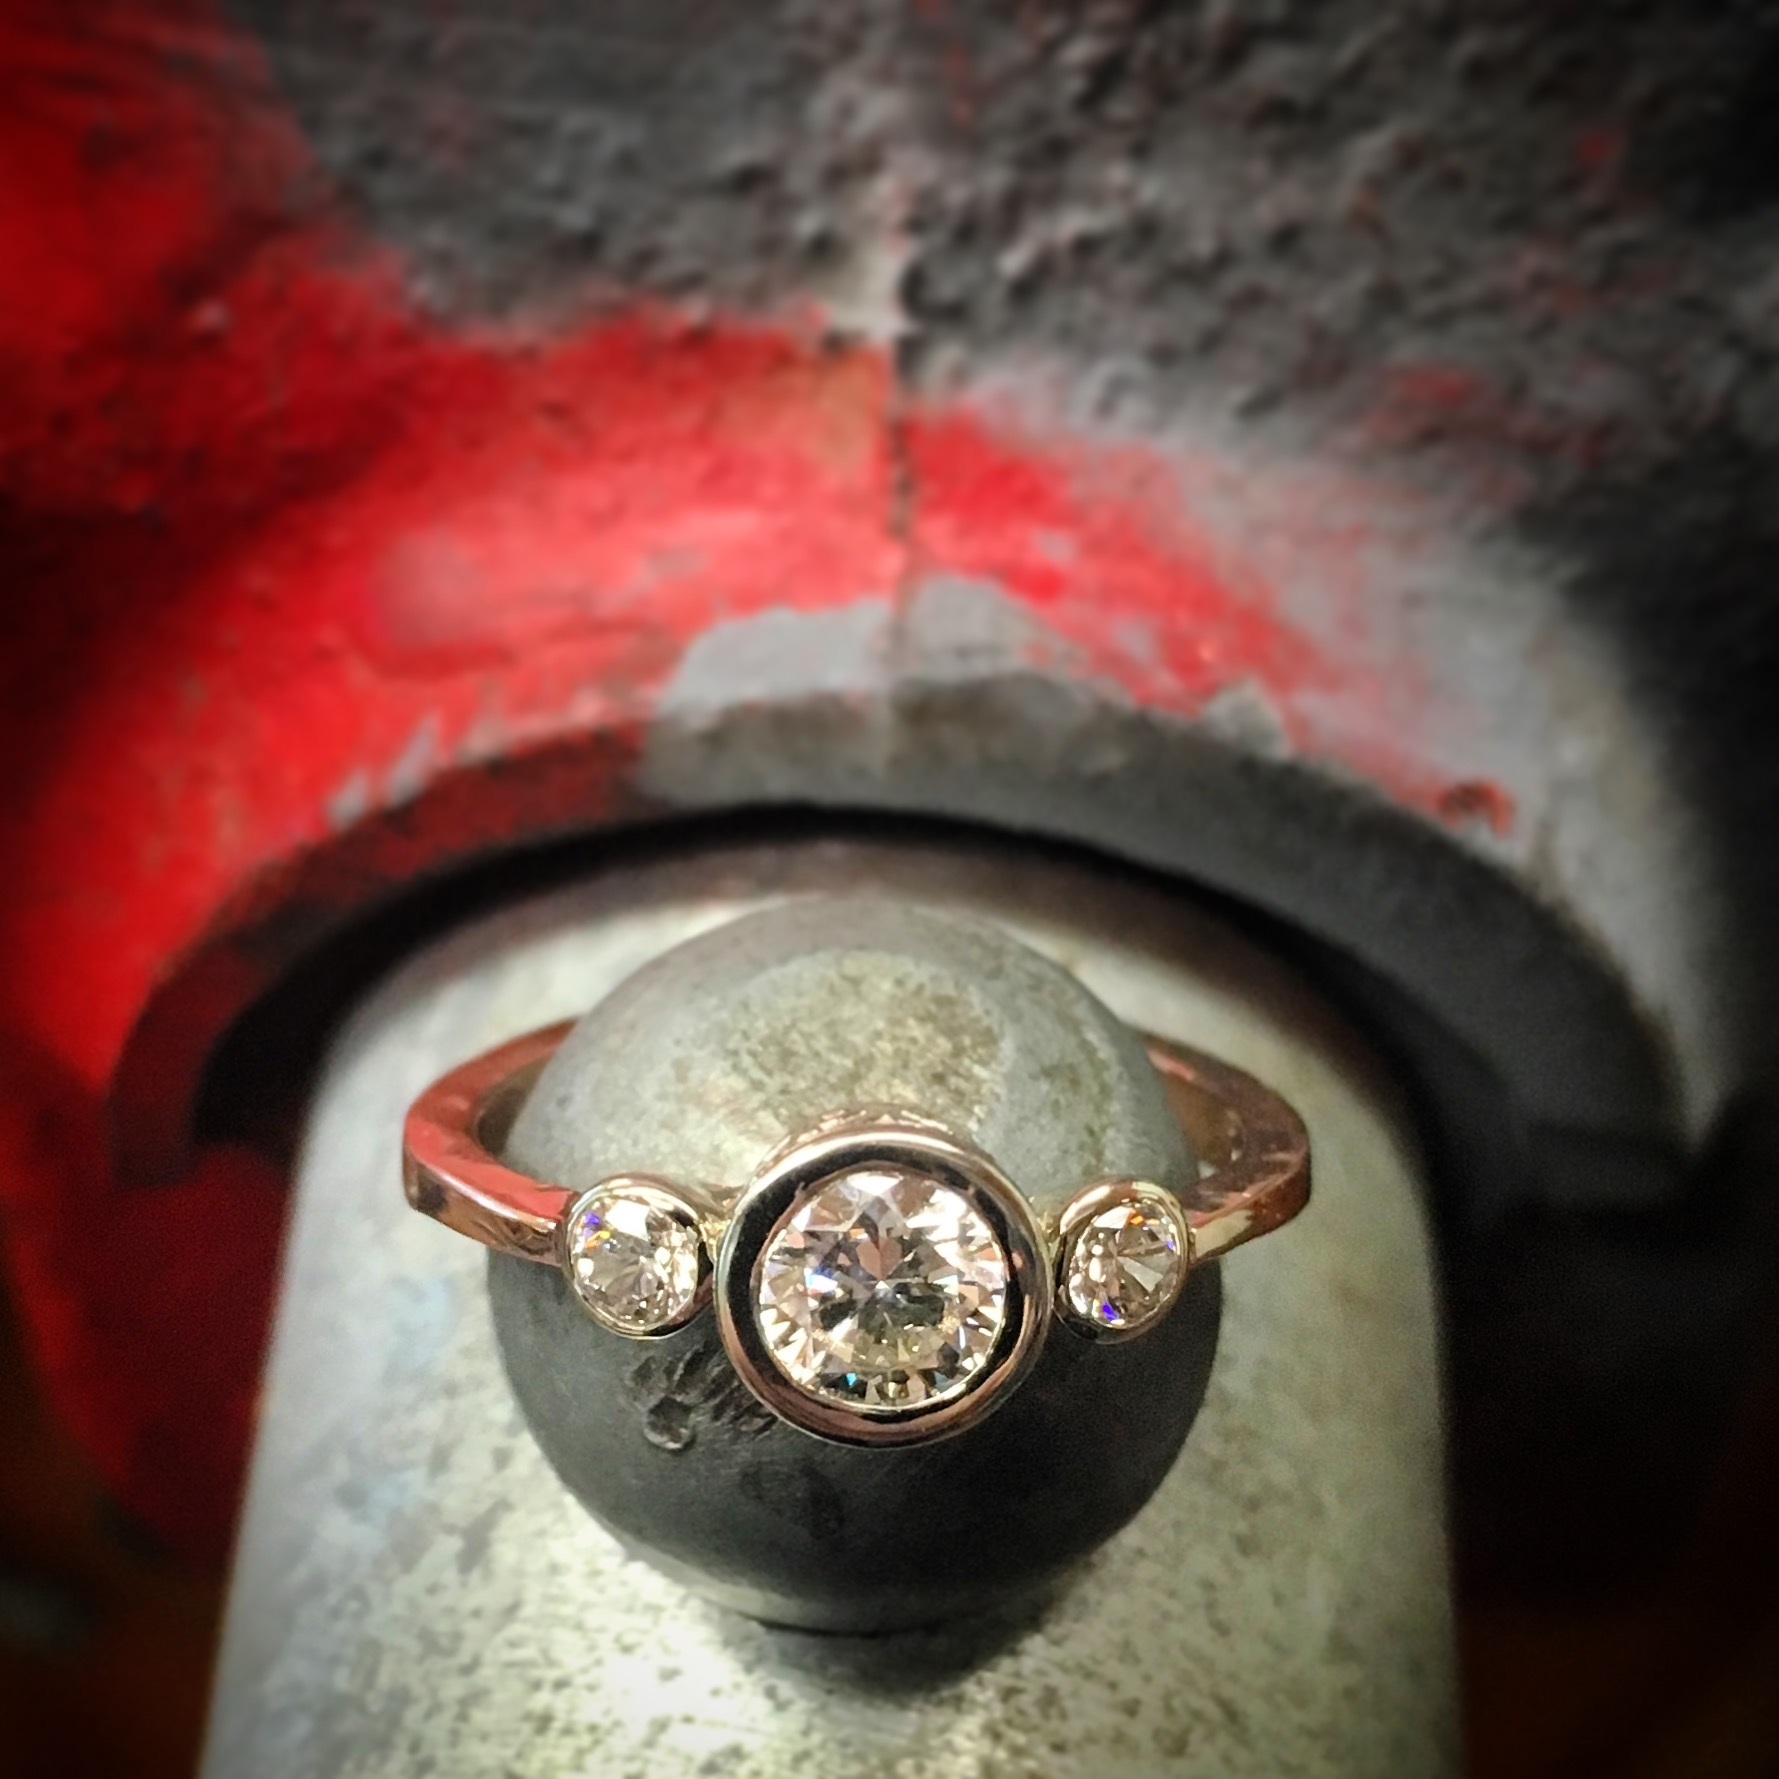 Forged rose gold with diamonds in white gold settings.